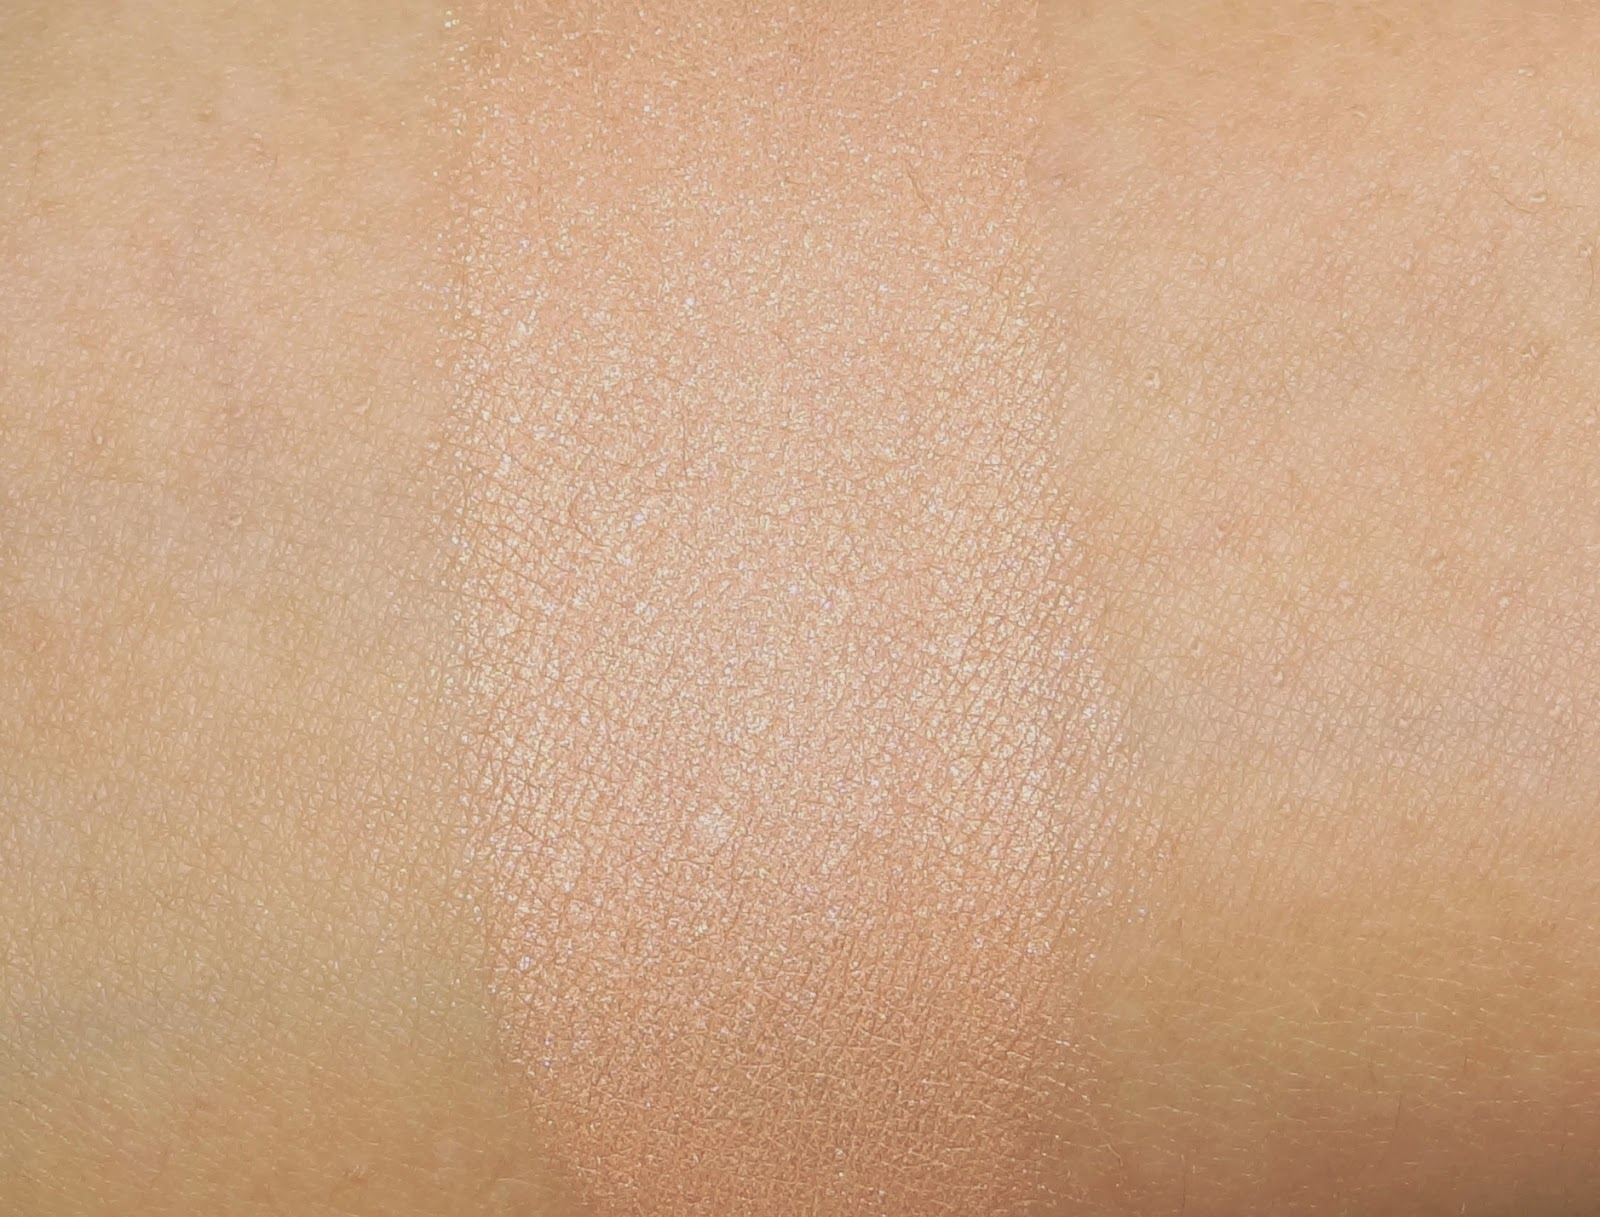 Ellis Faas Glow up highlighter swatches